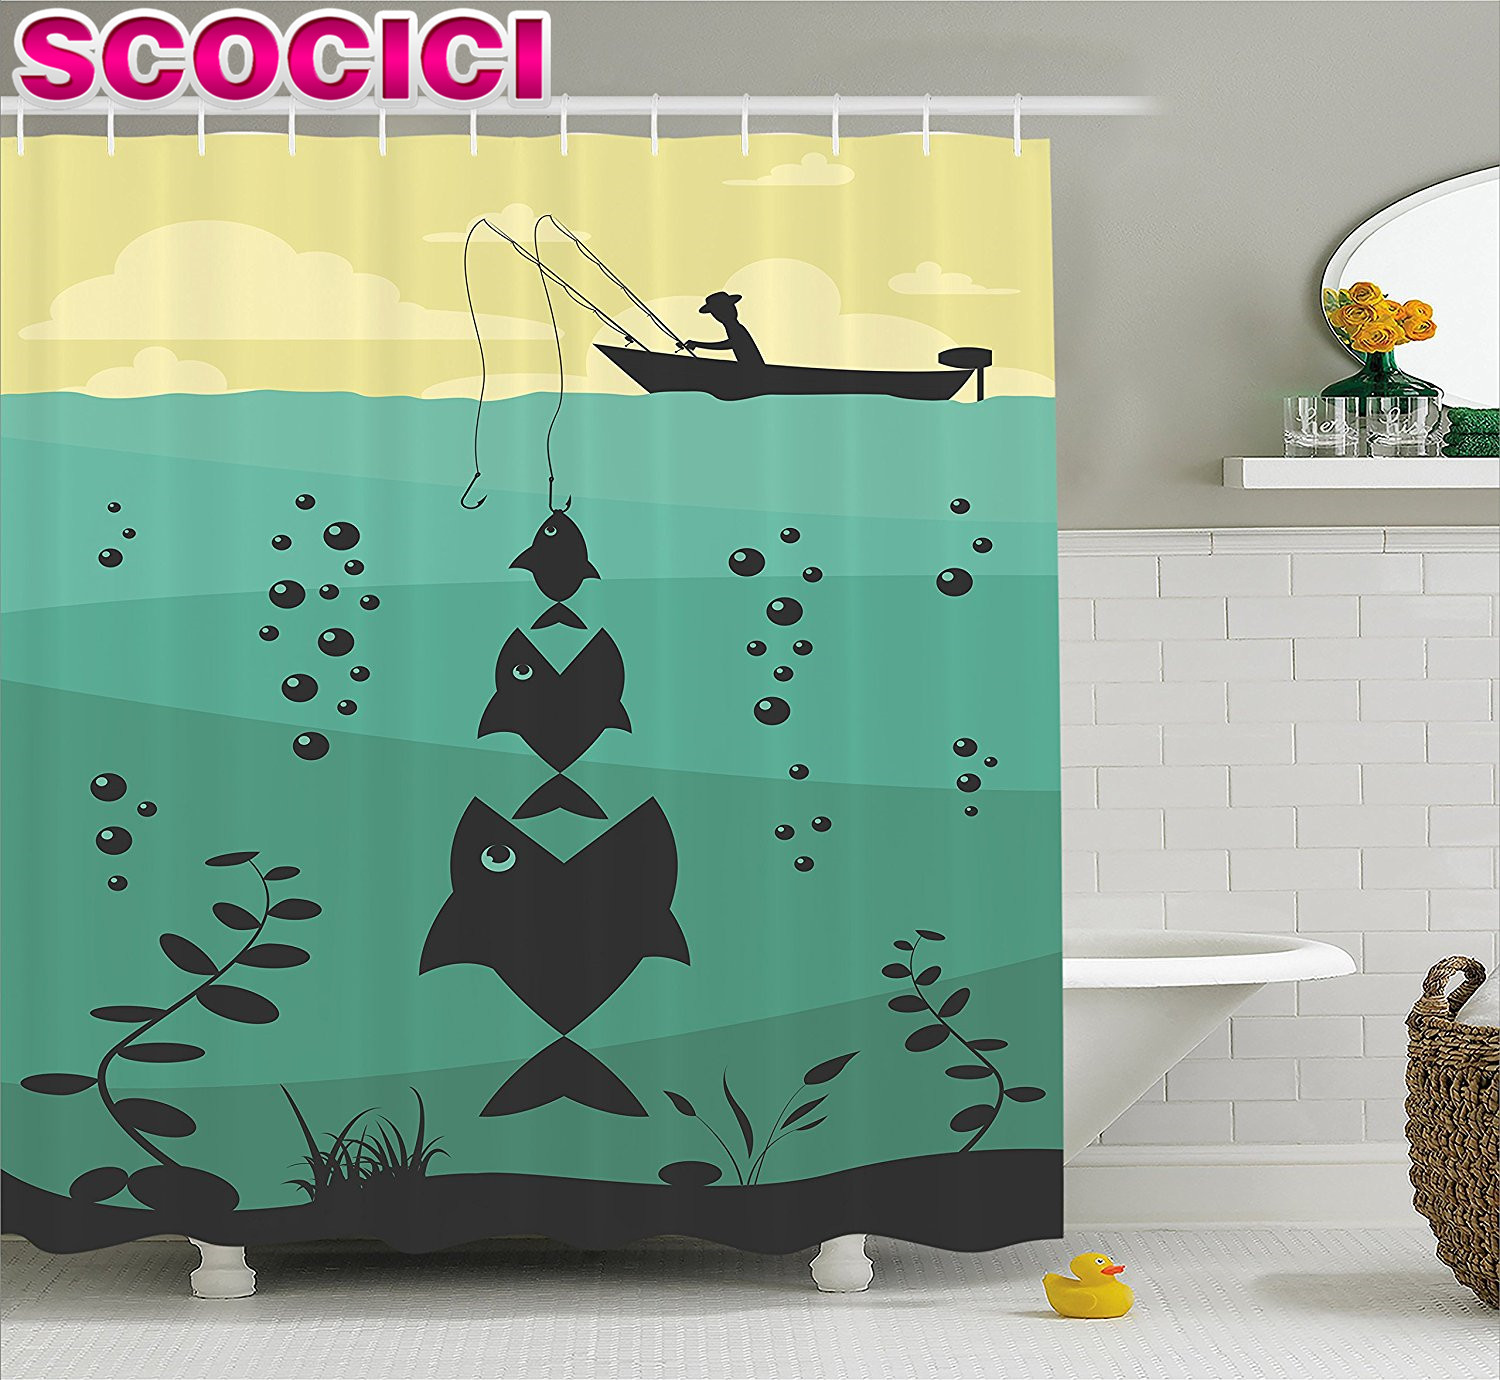 Fishing Decor Shower Curtain Fish Eats Little Textured Design In River With Trawler Rod Home